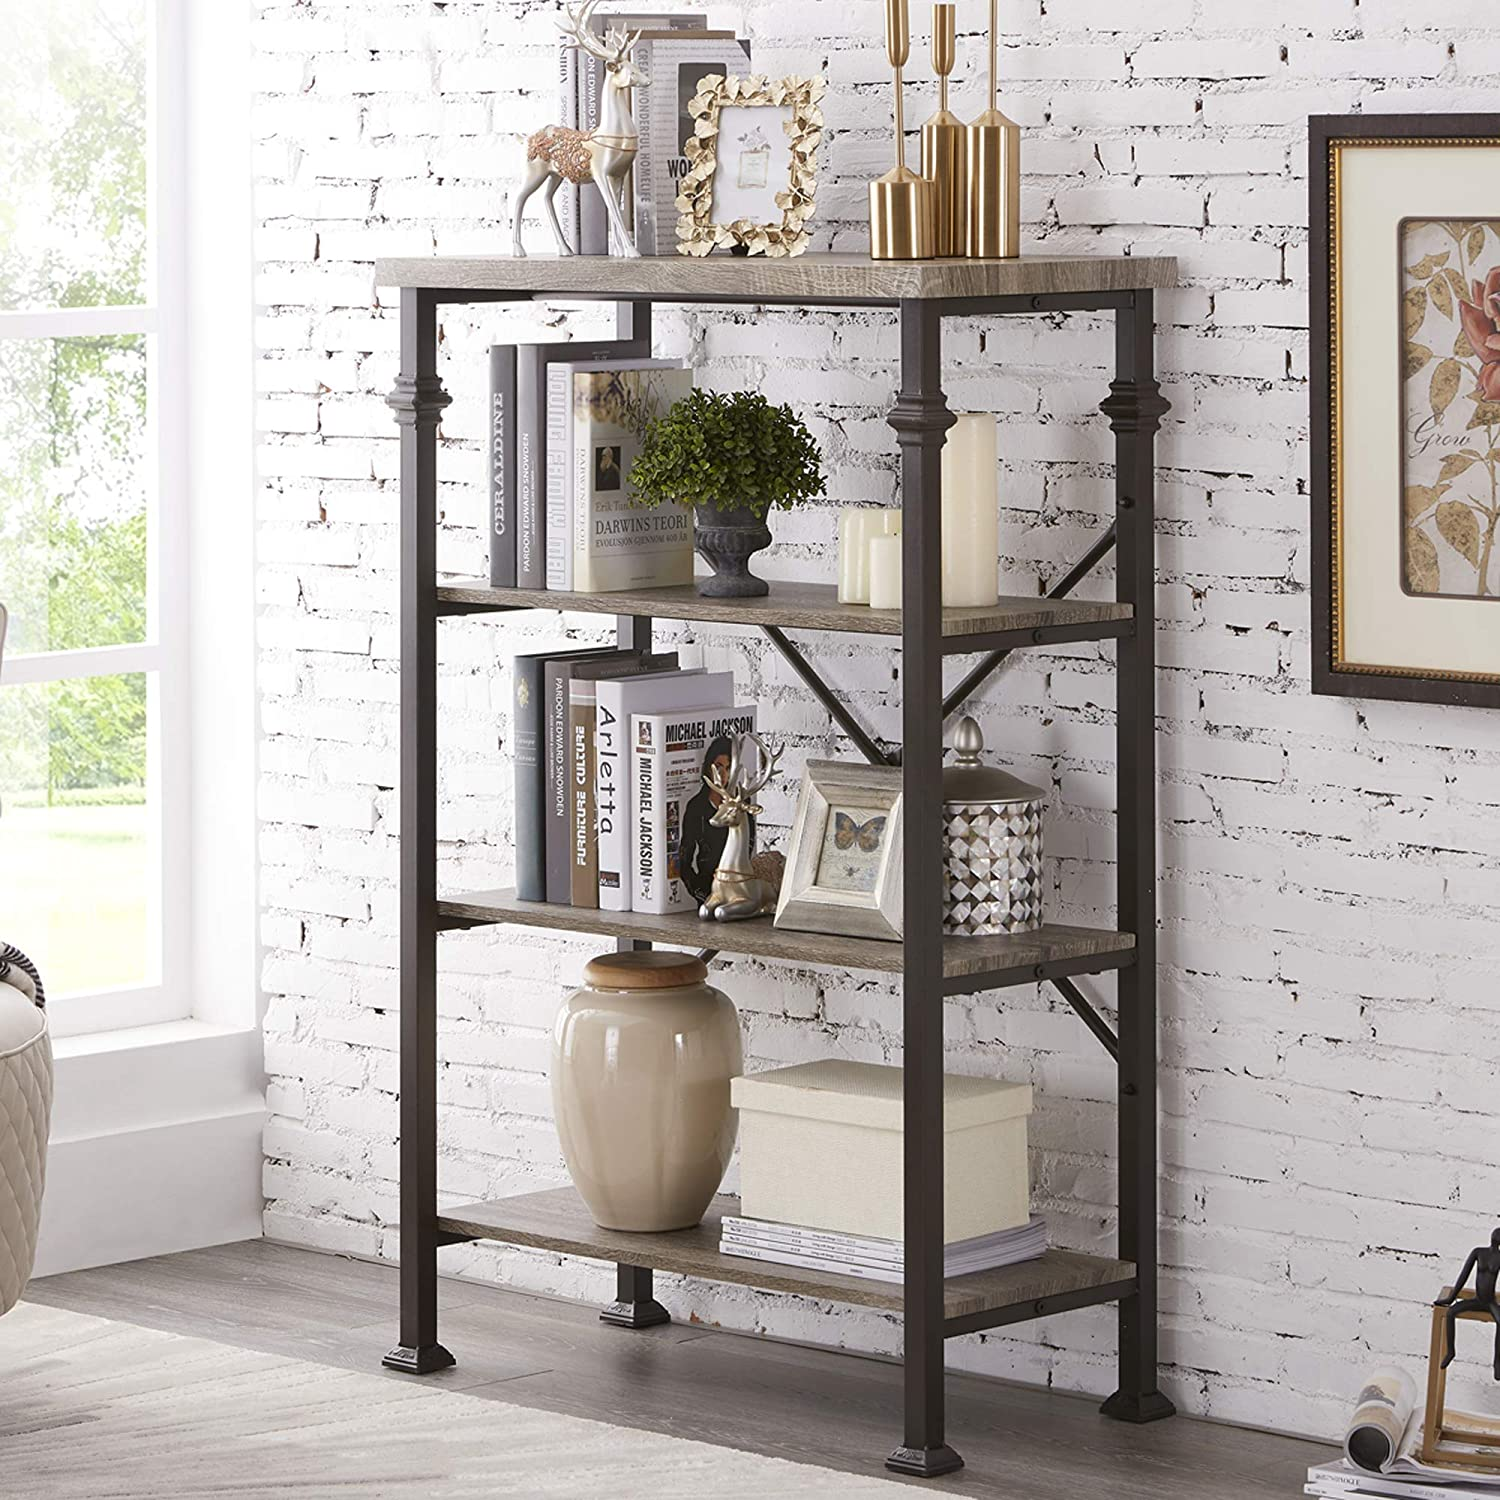 Hombazaar 4-Tier Industrial Bookcases, Vintage Open Etagere Bookshelf, Multi-Functional Shelf Units for Collection, Grey Oak